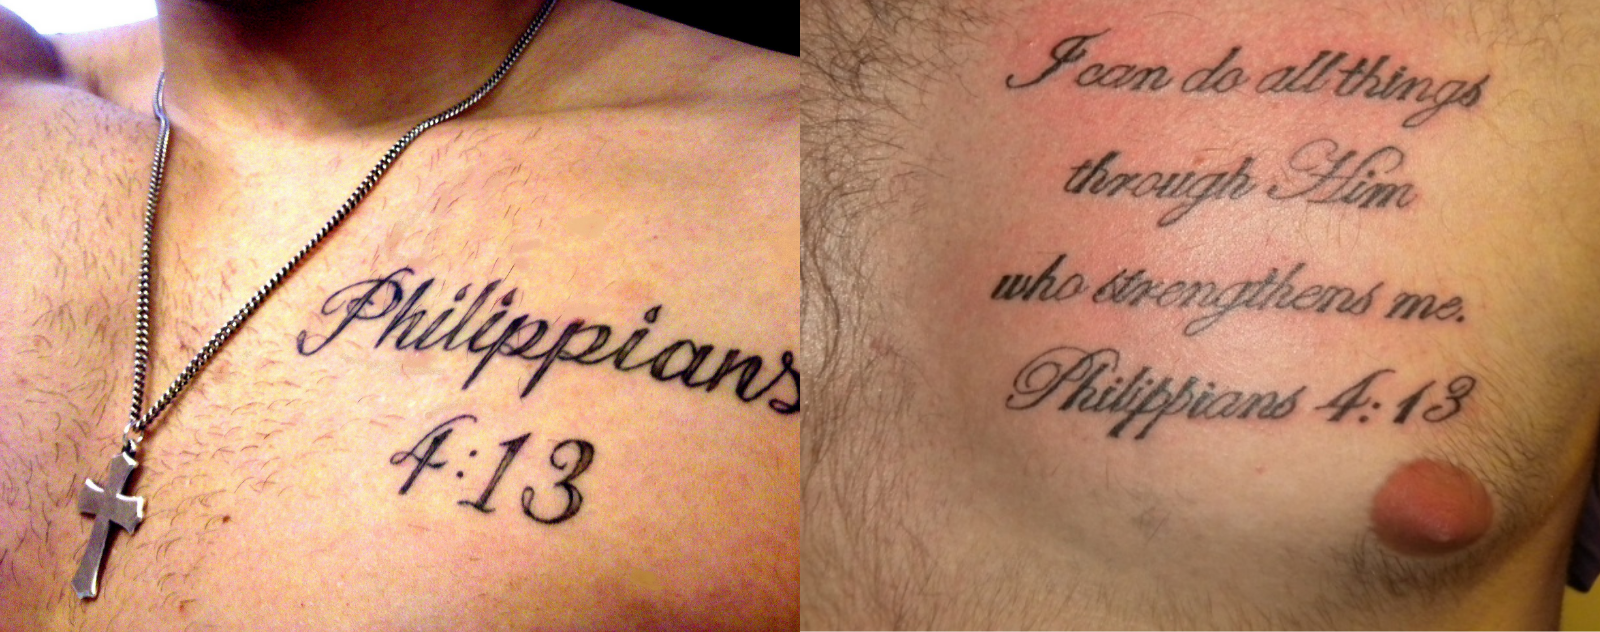 philippians-4-13-tattoo-chest-2